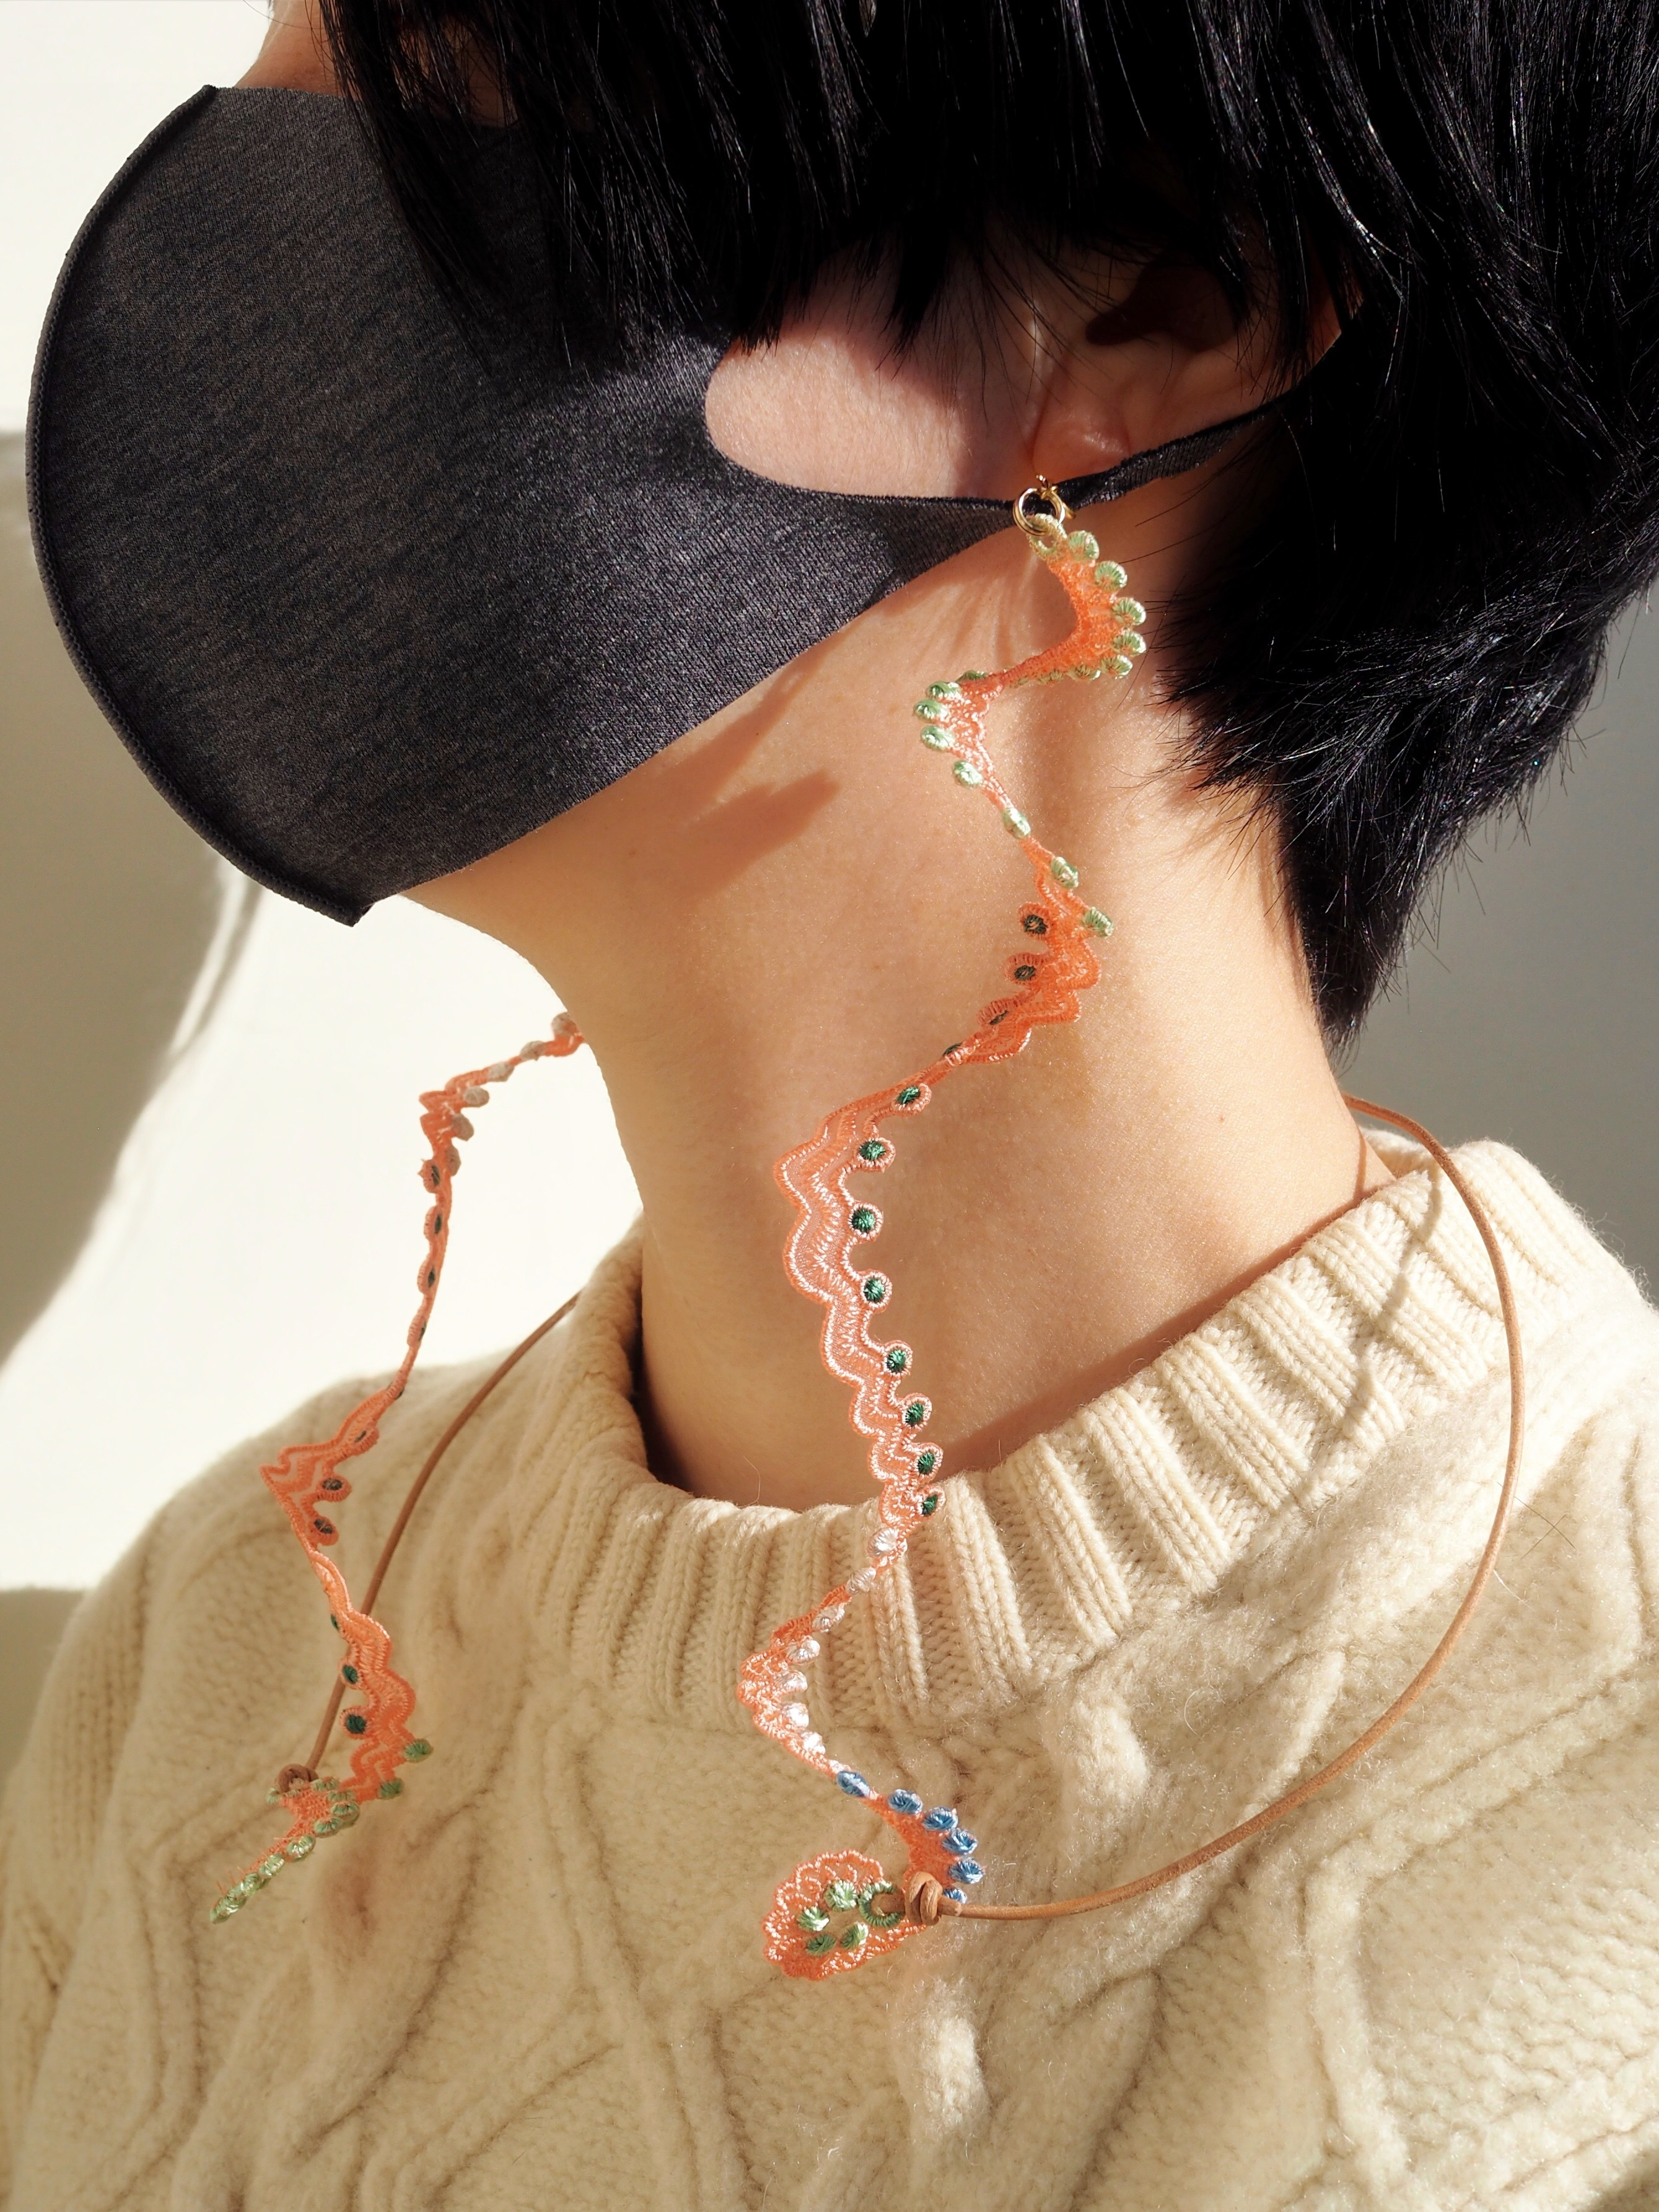 ARRO / Embroidery mask strap / WHORLS / PINK